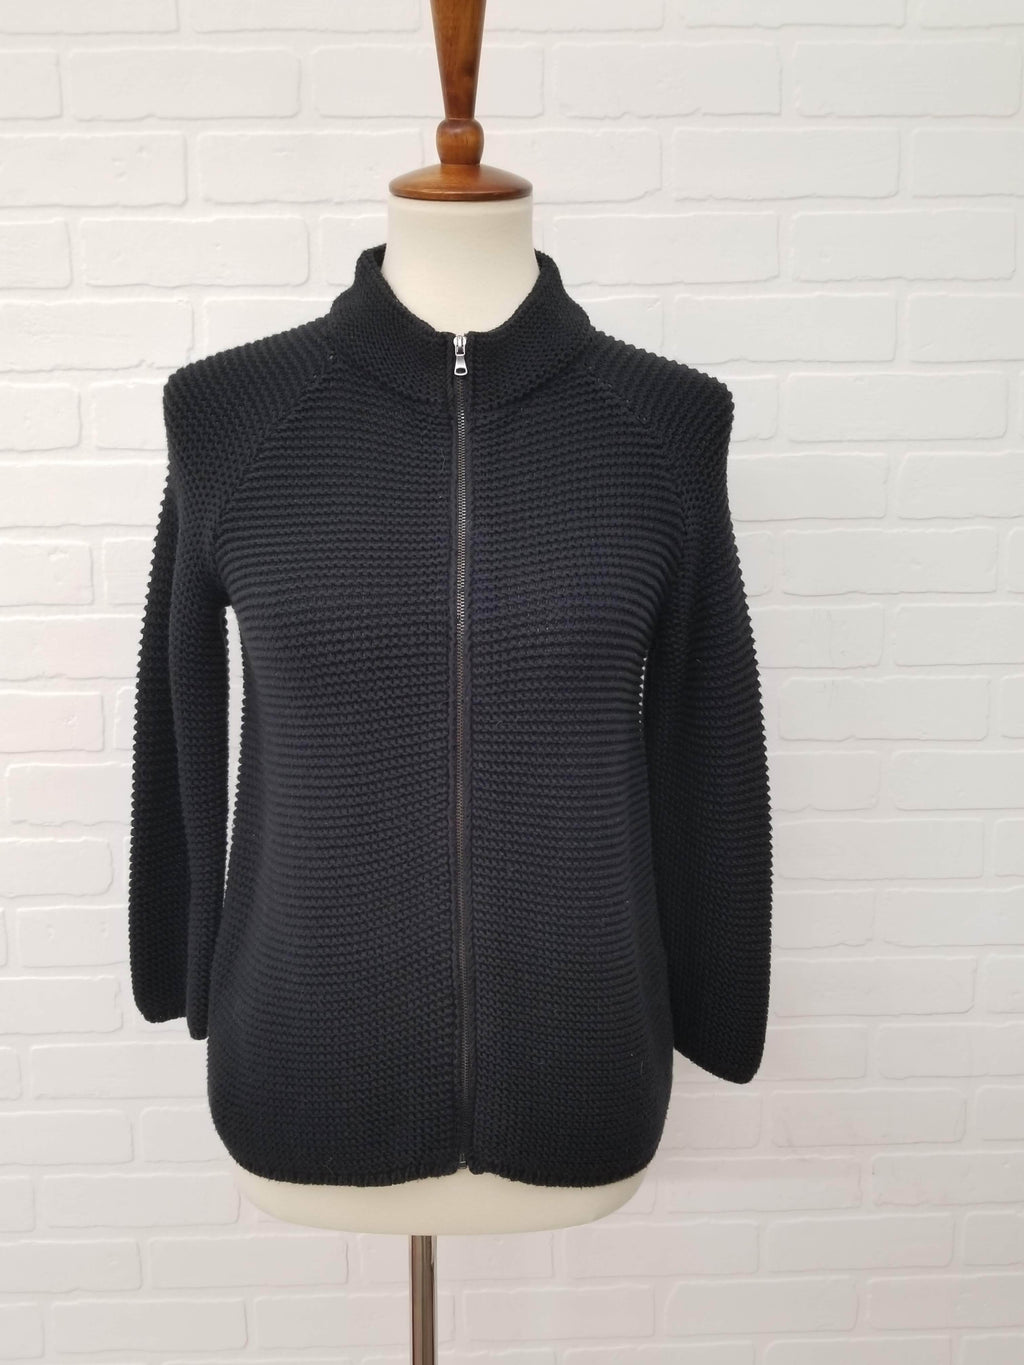 Talbots Zip Up Sweater XS